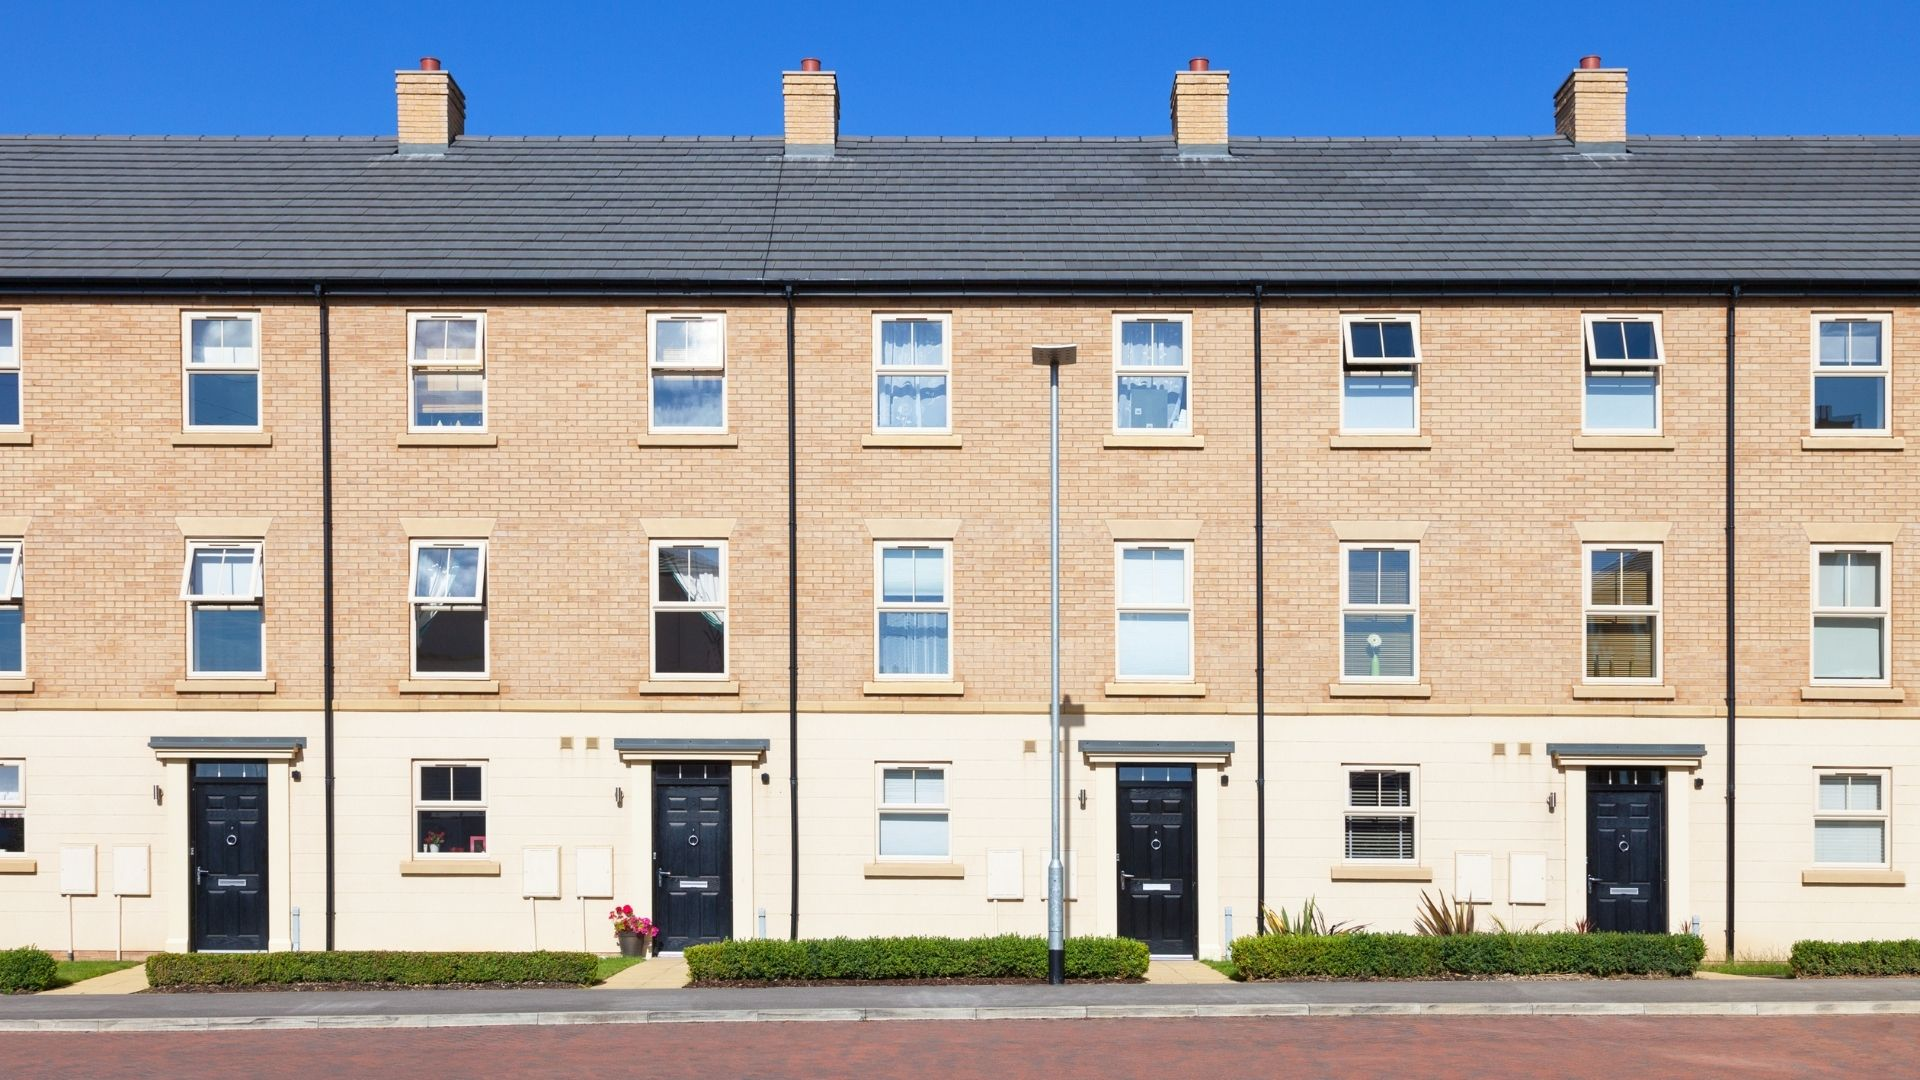 Line of terraced houses